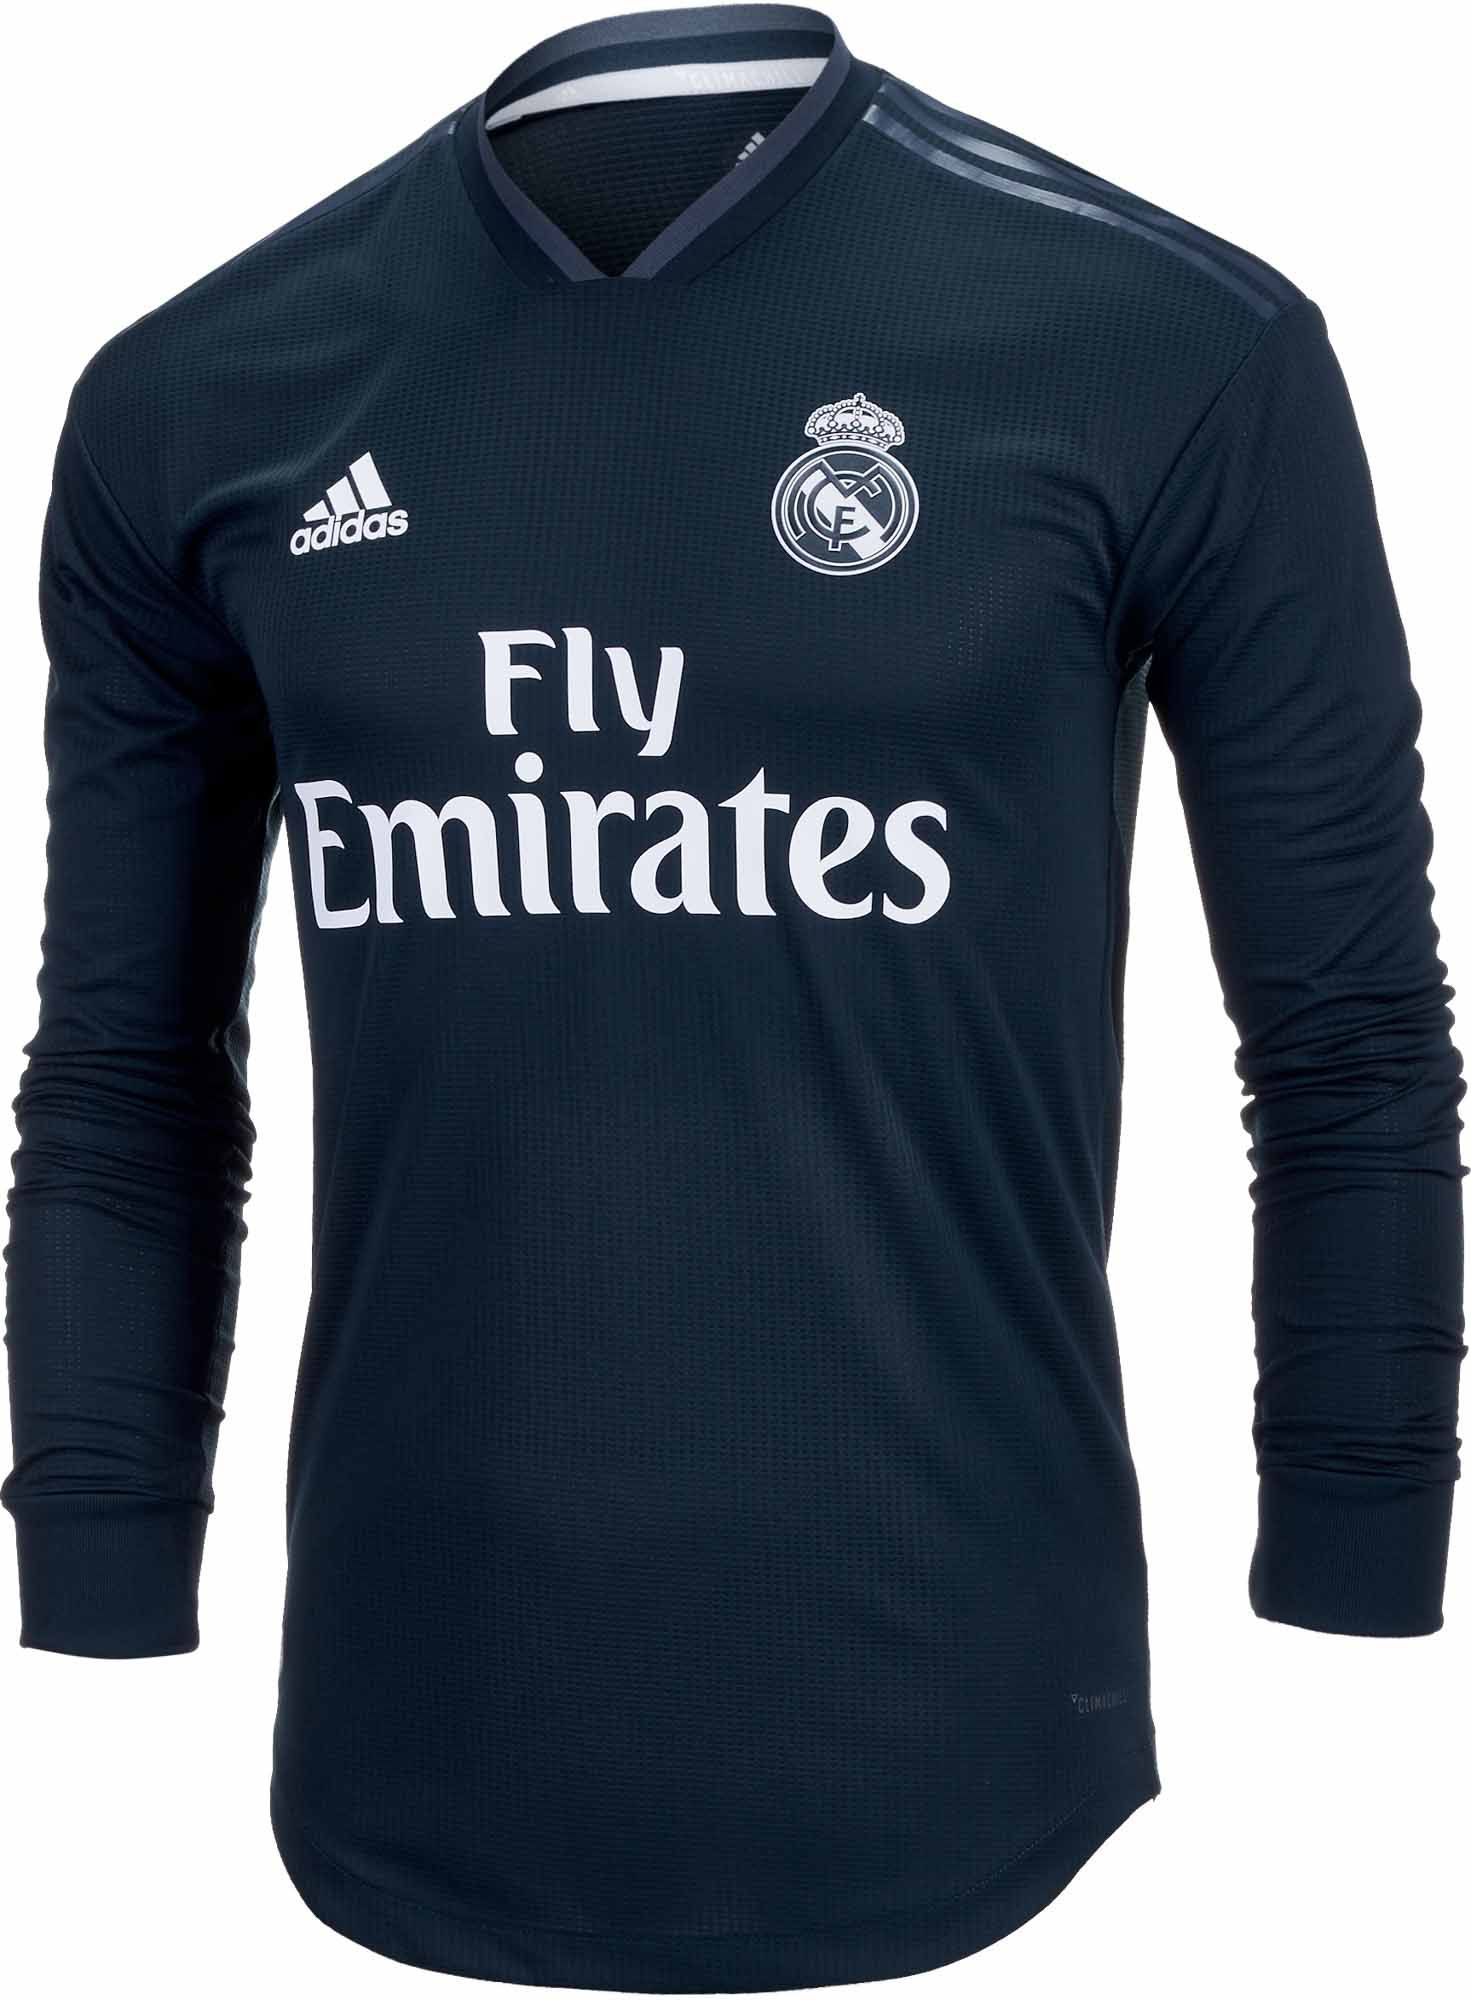 2018 19 adidas Luka Modric Real Madrid Authentic L S Away Jersey ddcda01d8